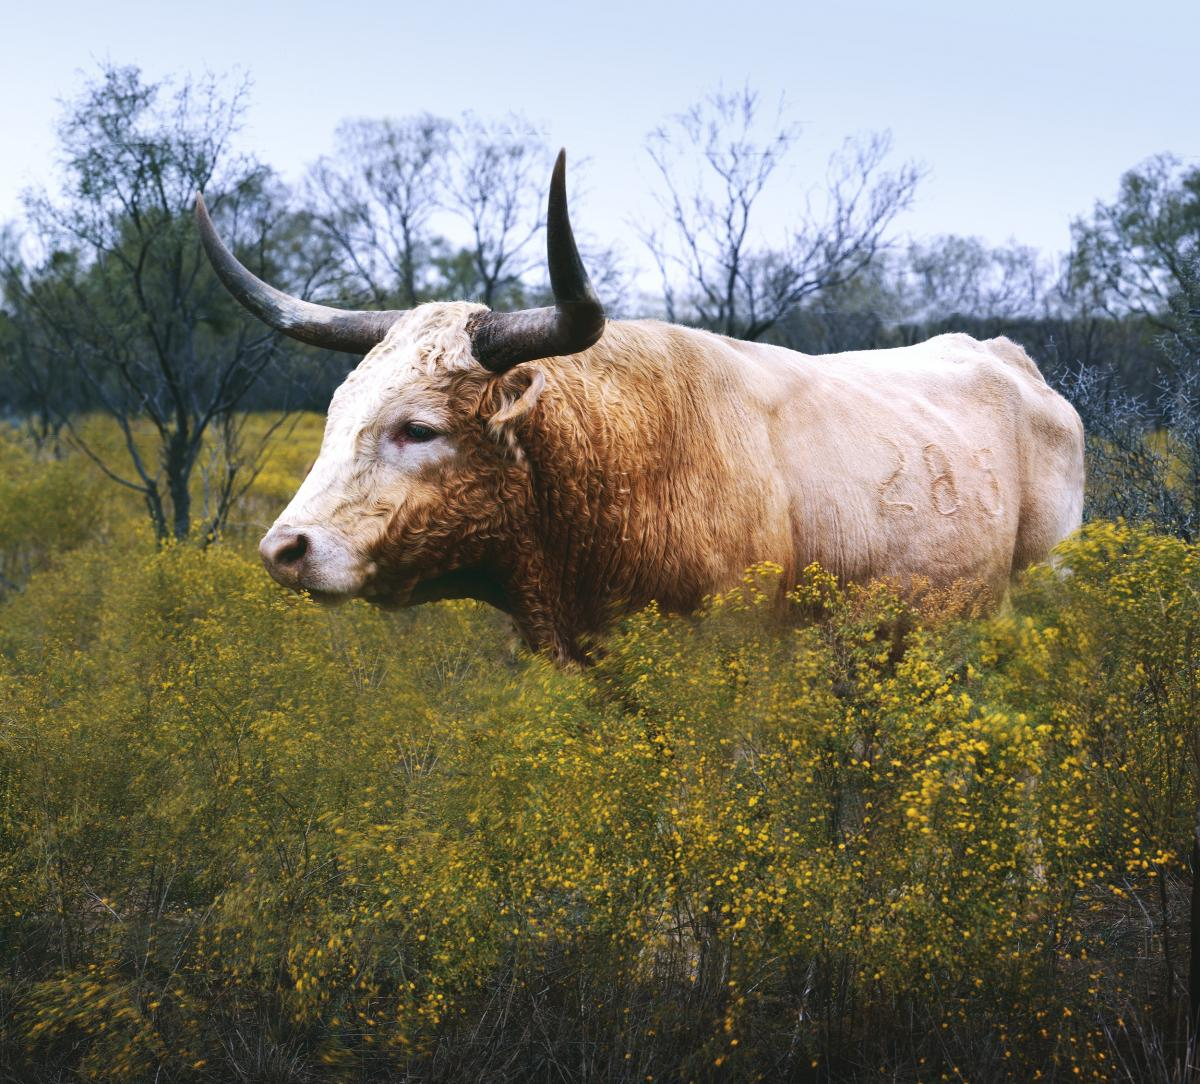 The State of Texas raises longhorn cattle at Abilene State Historical Park on the site of old Fort Griffin. Original image from Carol M. Highsmith's America, Library of Congress collection.